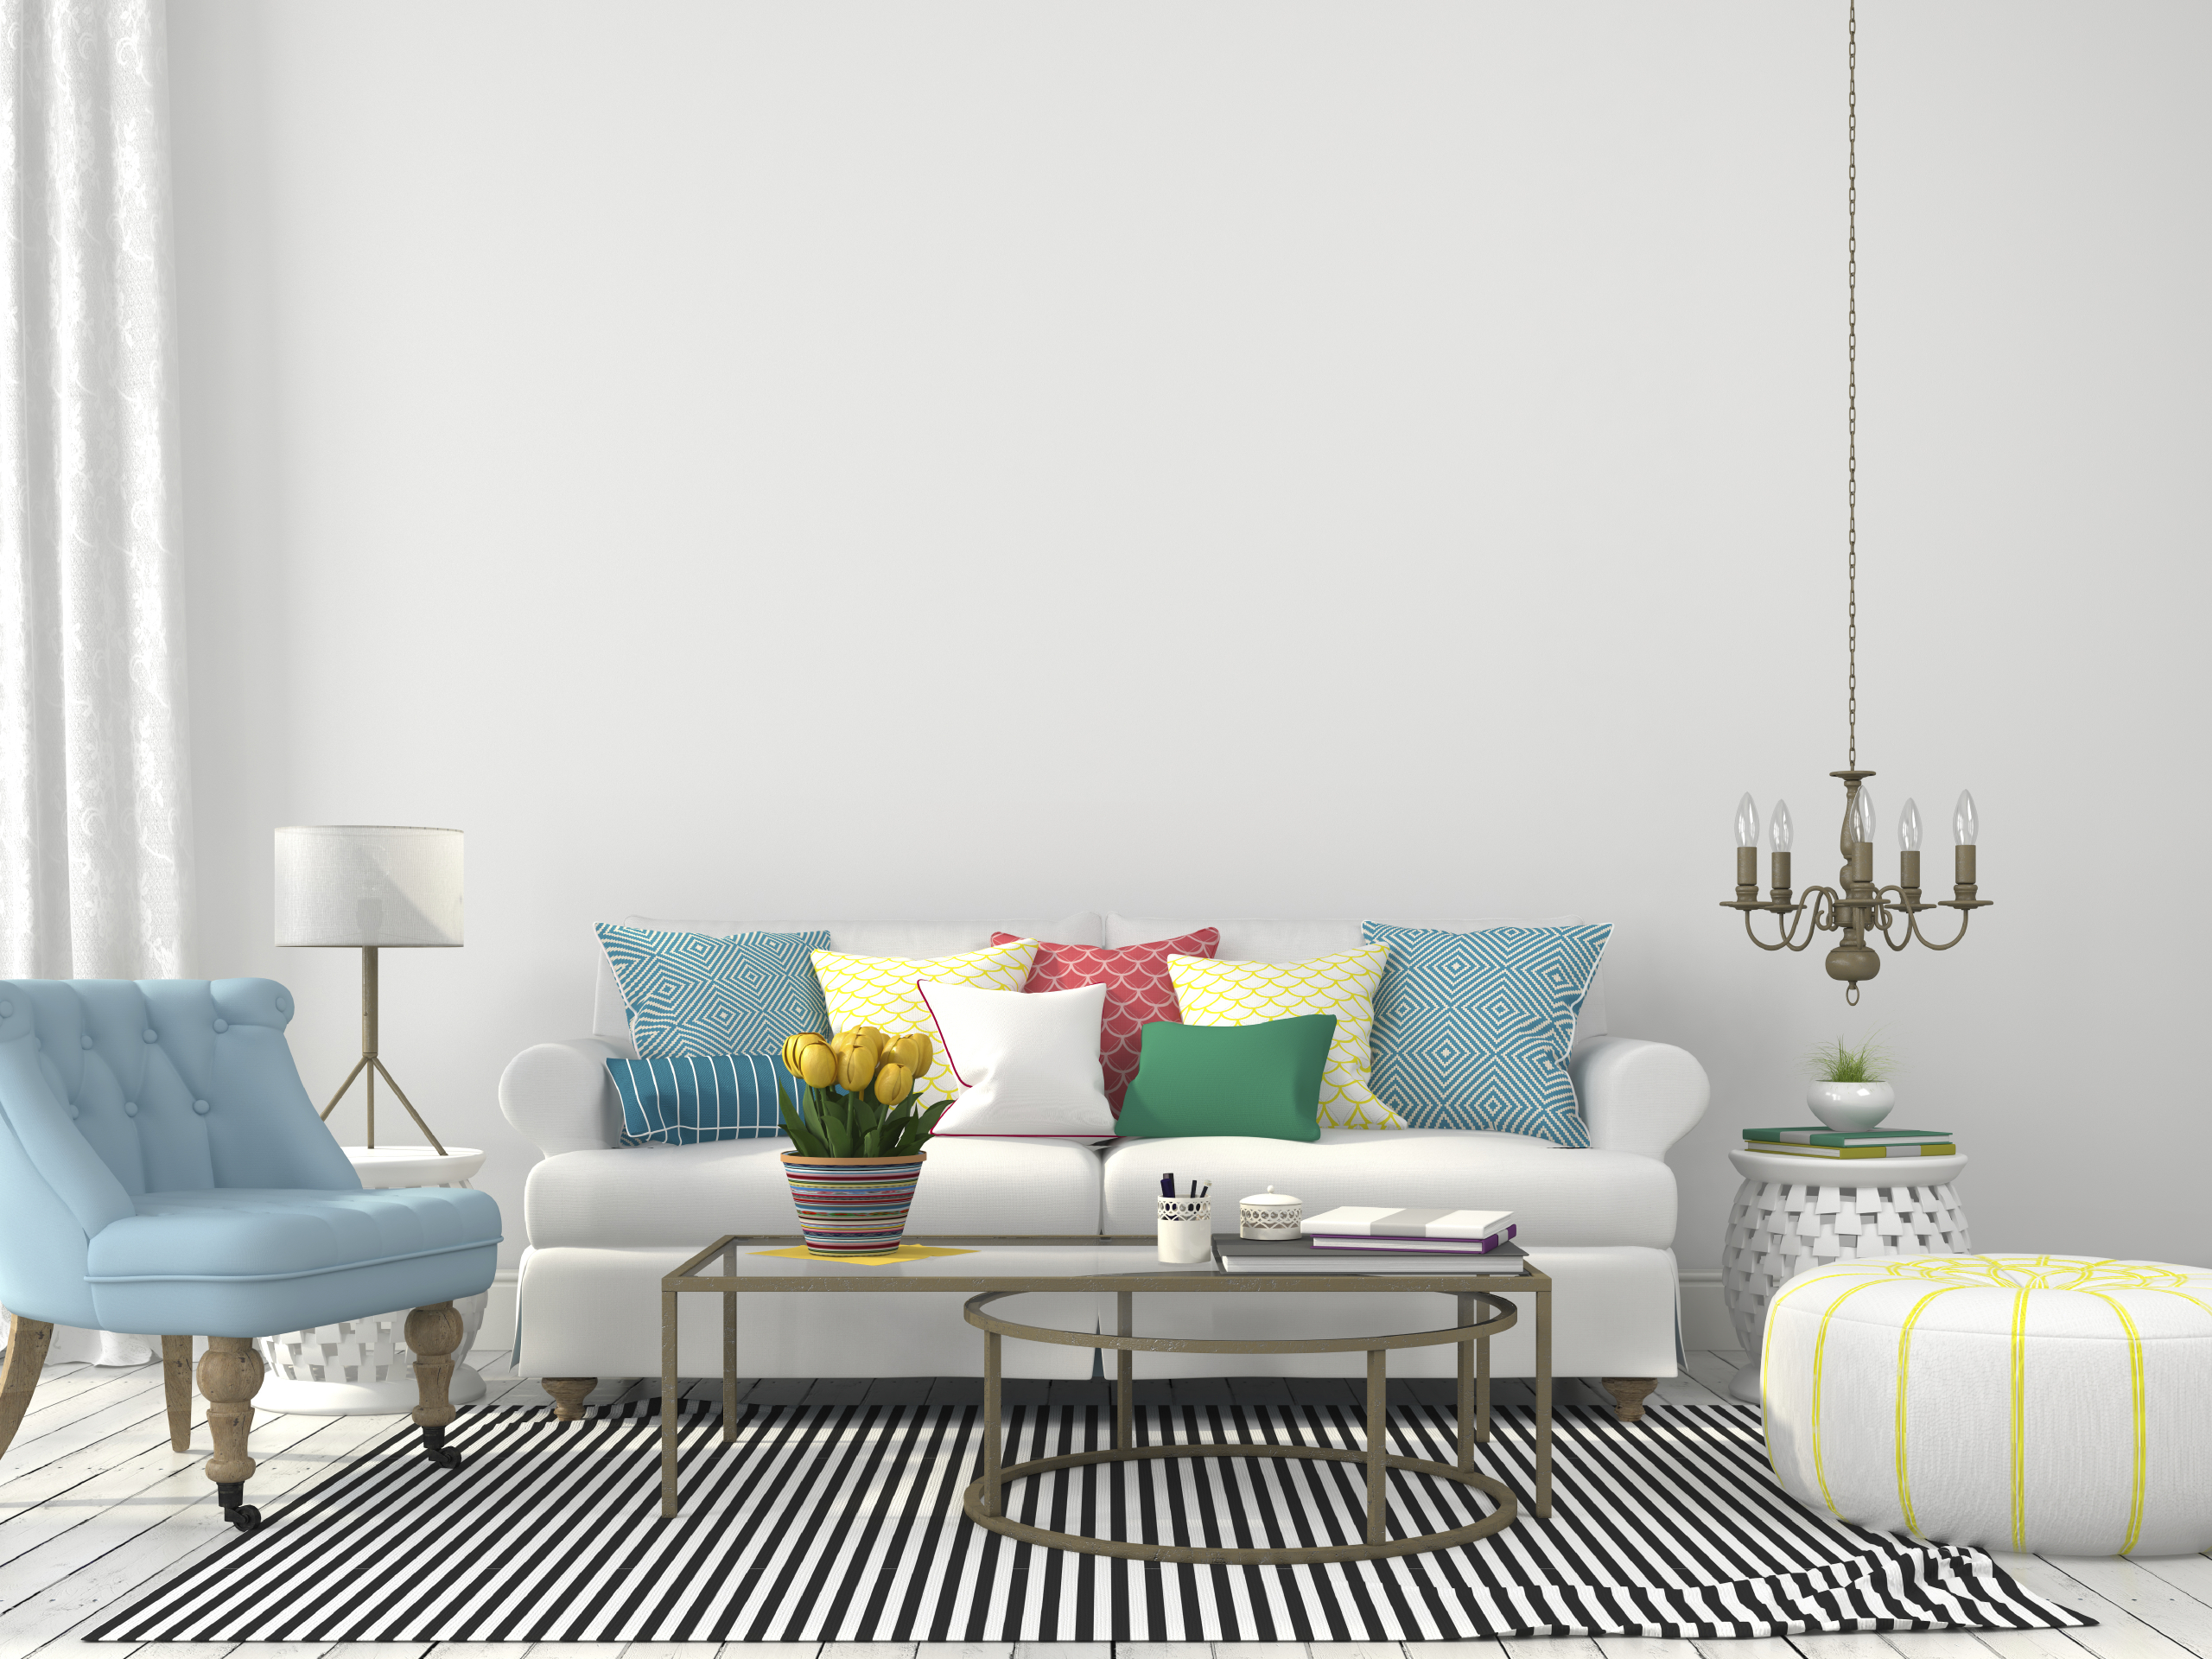 Living room with colorful pillows - Austin Homes for Sale | New ...